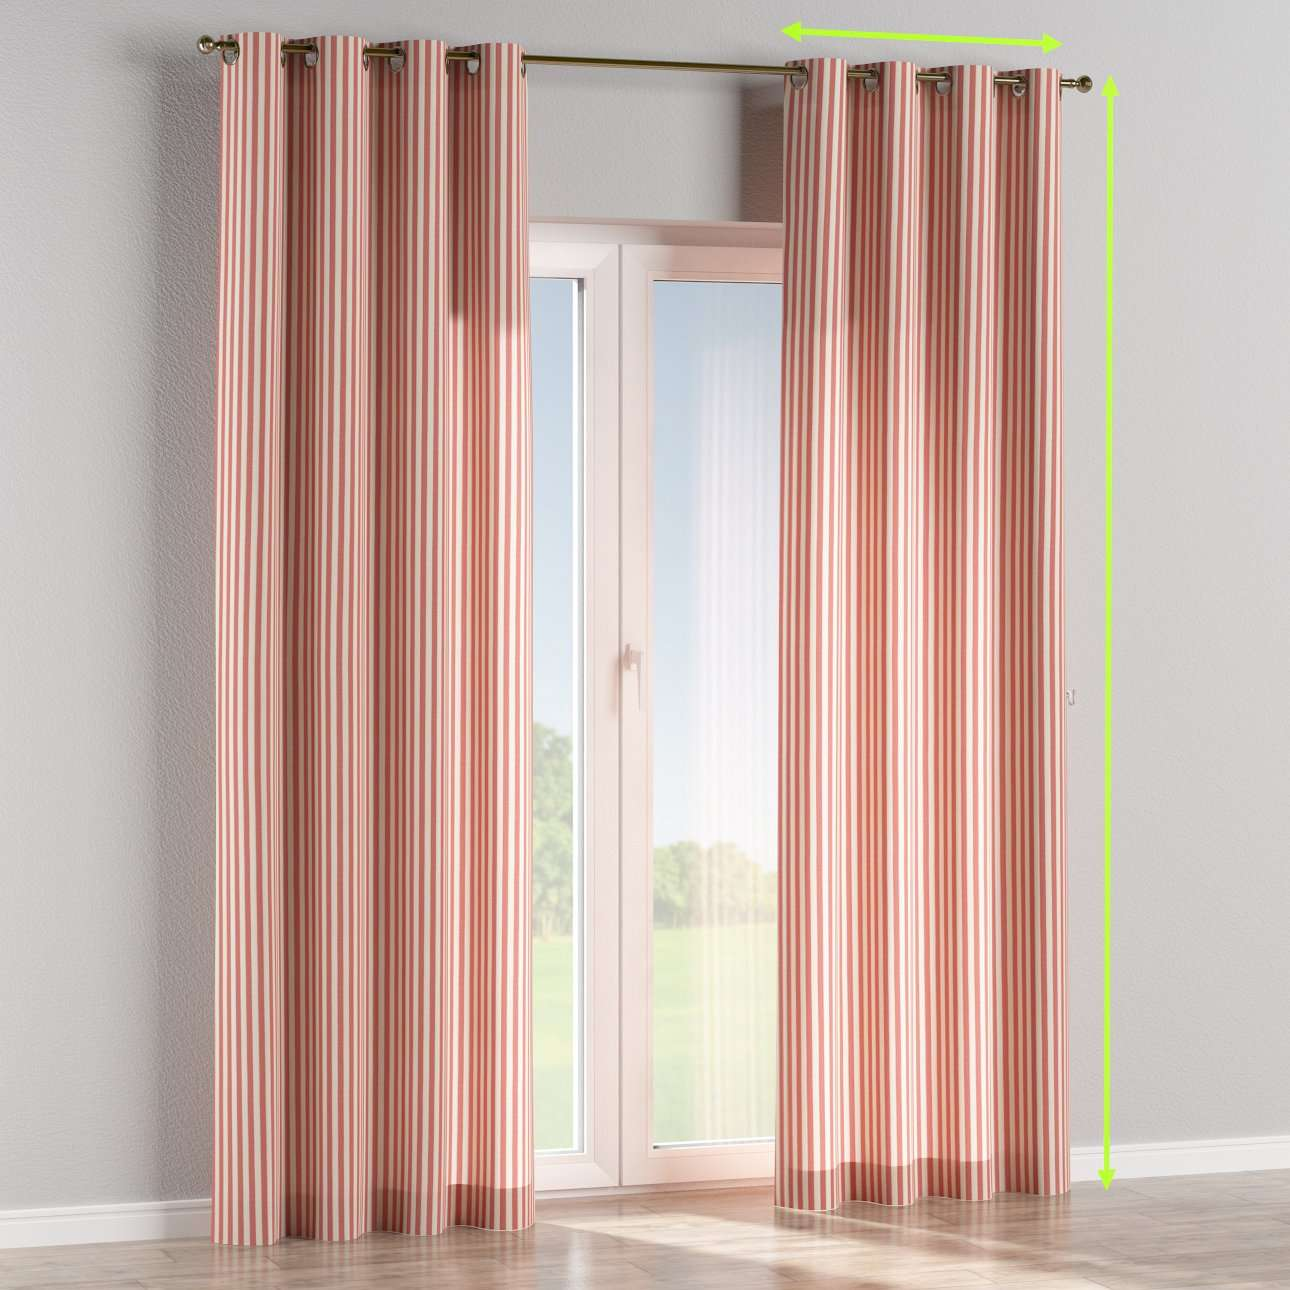 Eyelet curtain in collection Quadro, fabric: 136-17